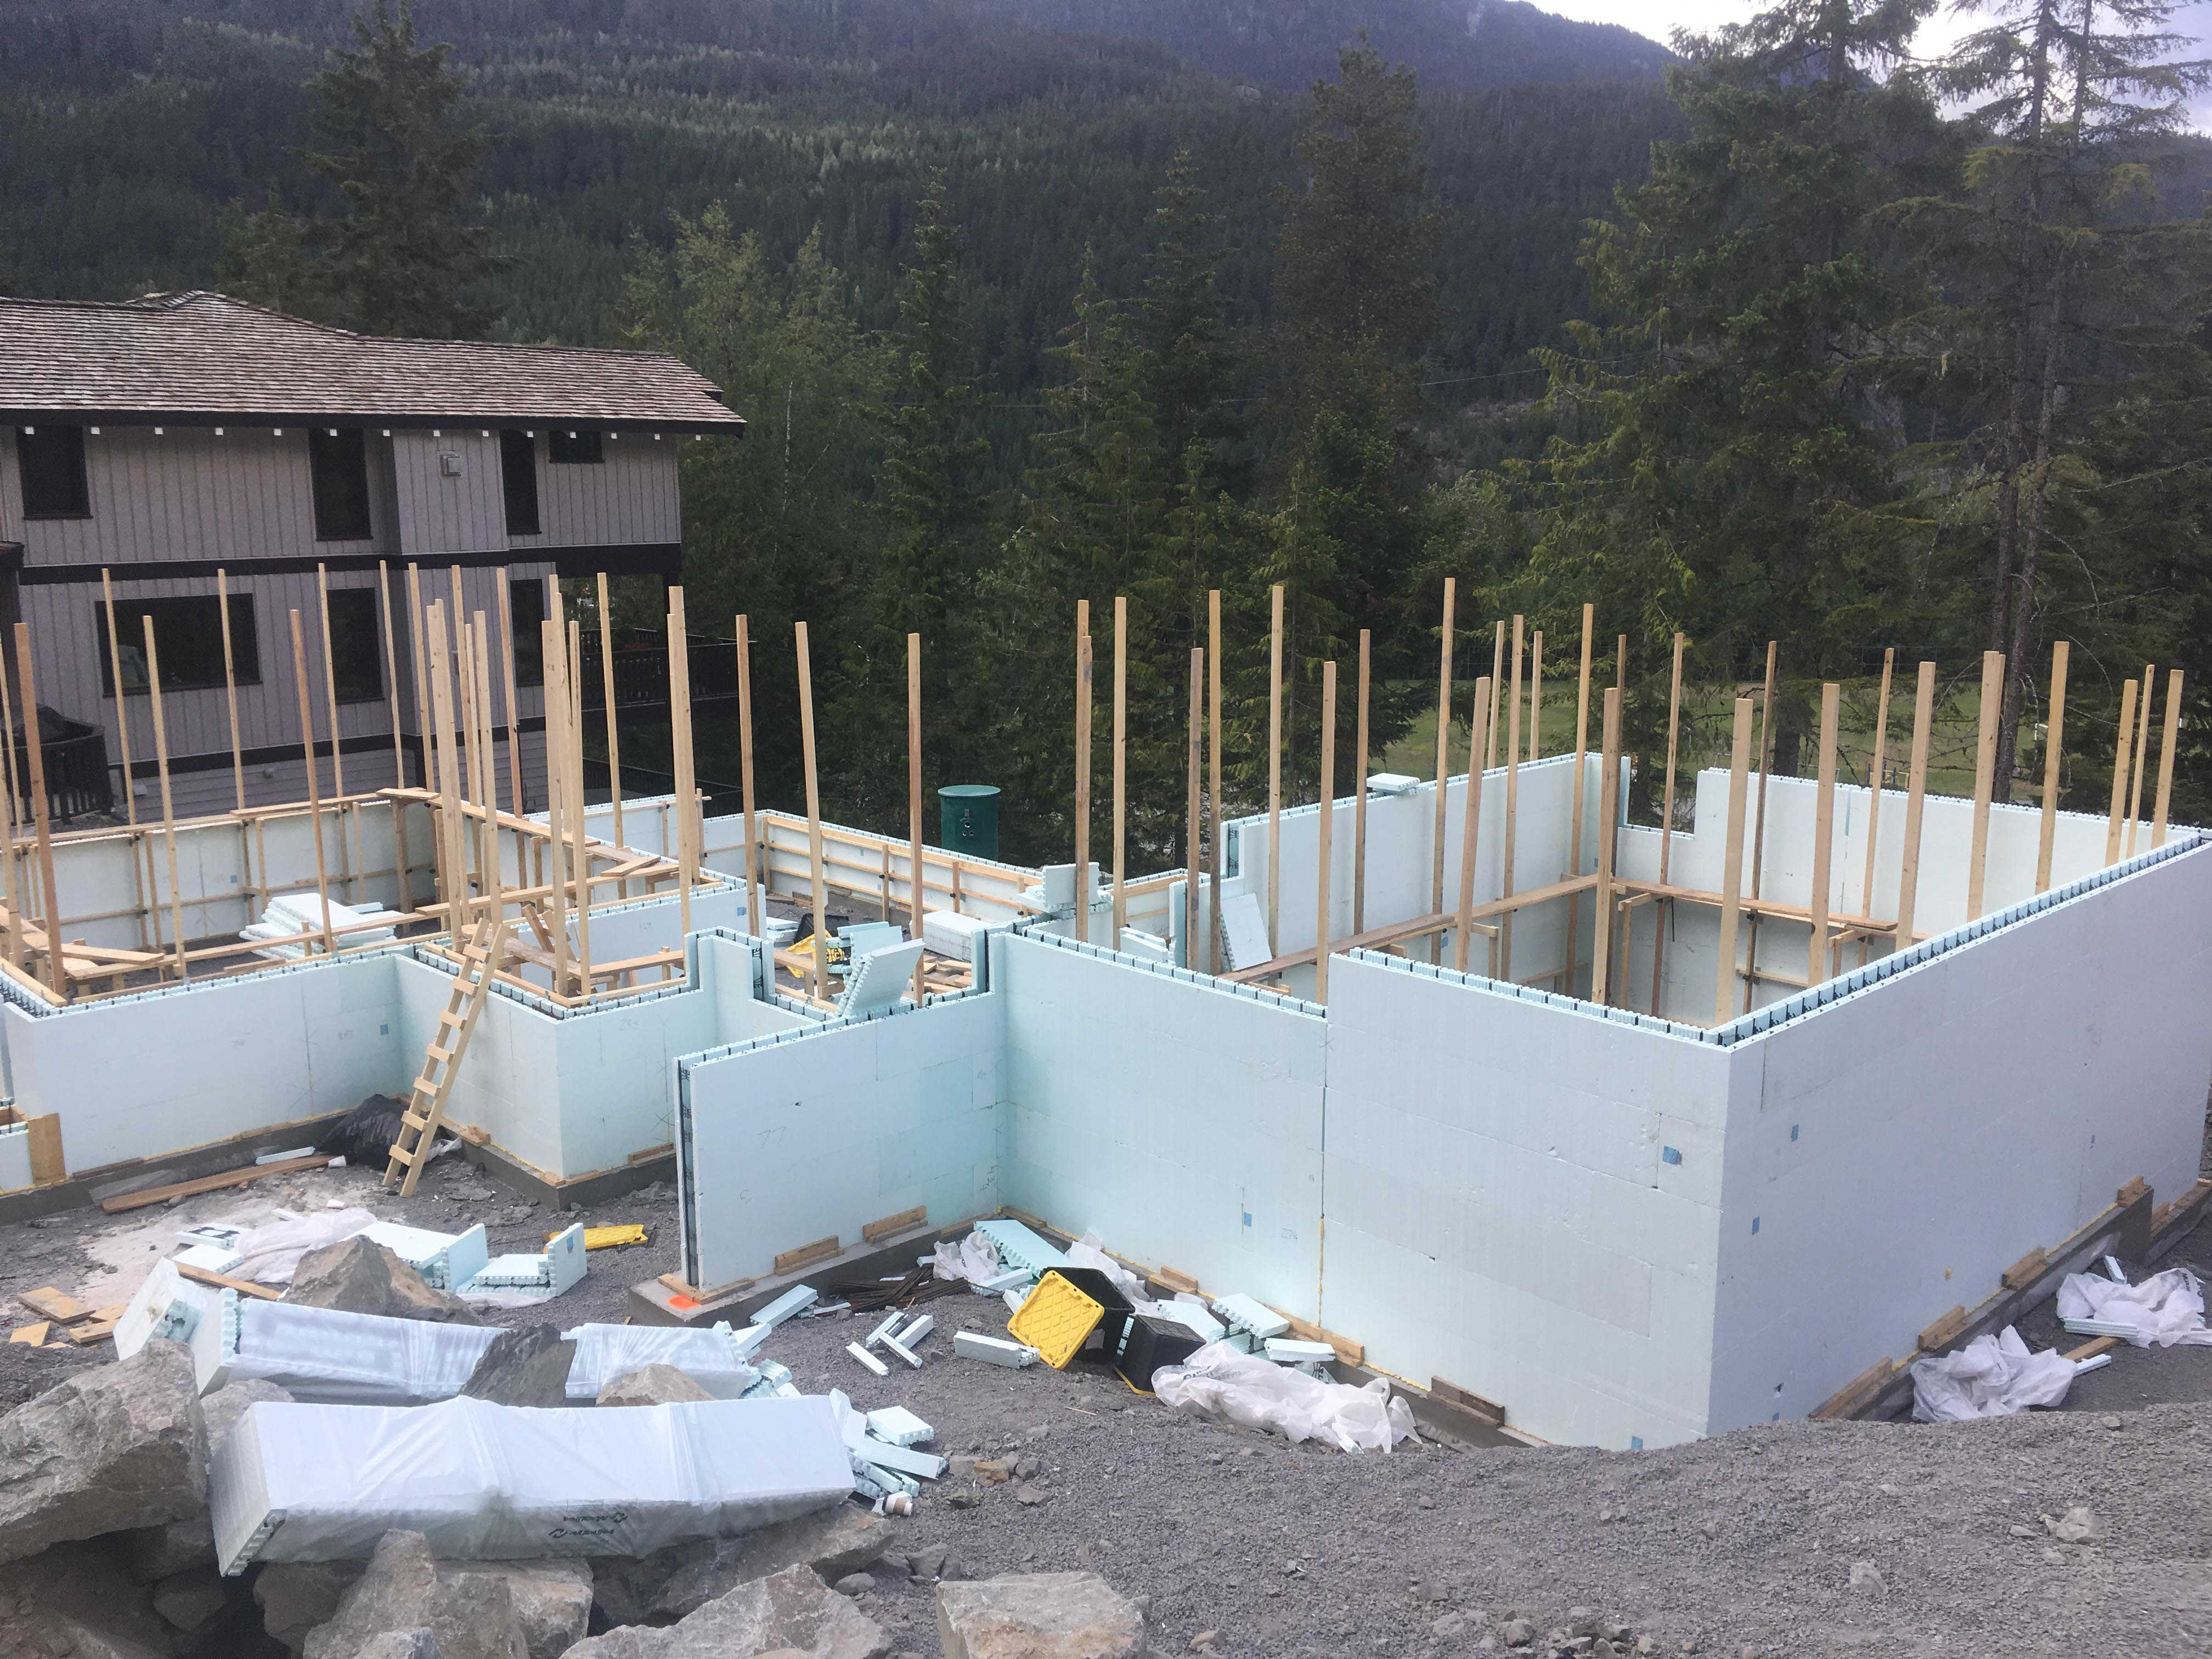 Pound 4 Pound, Framing and Forming. Large wall foundations